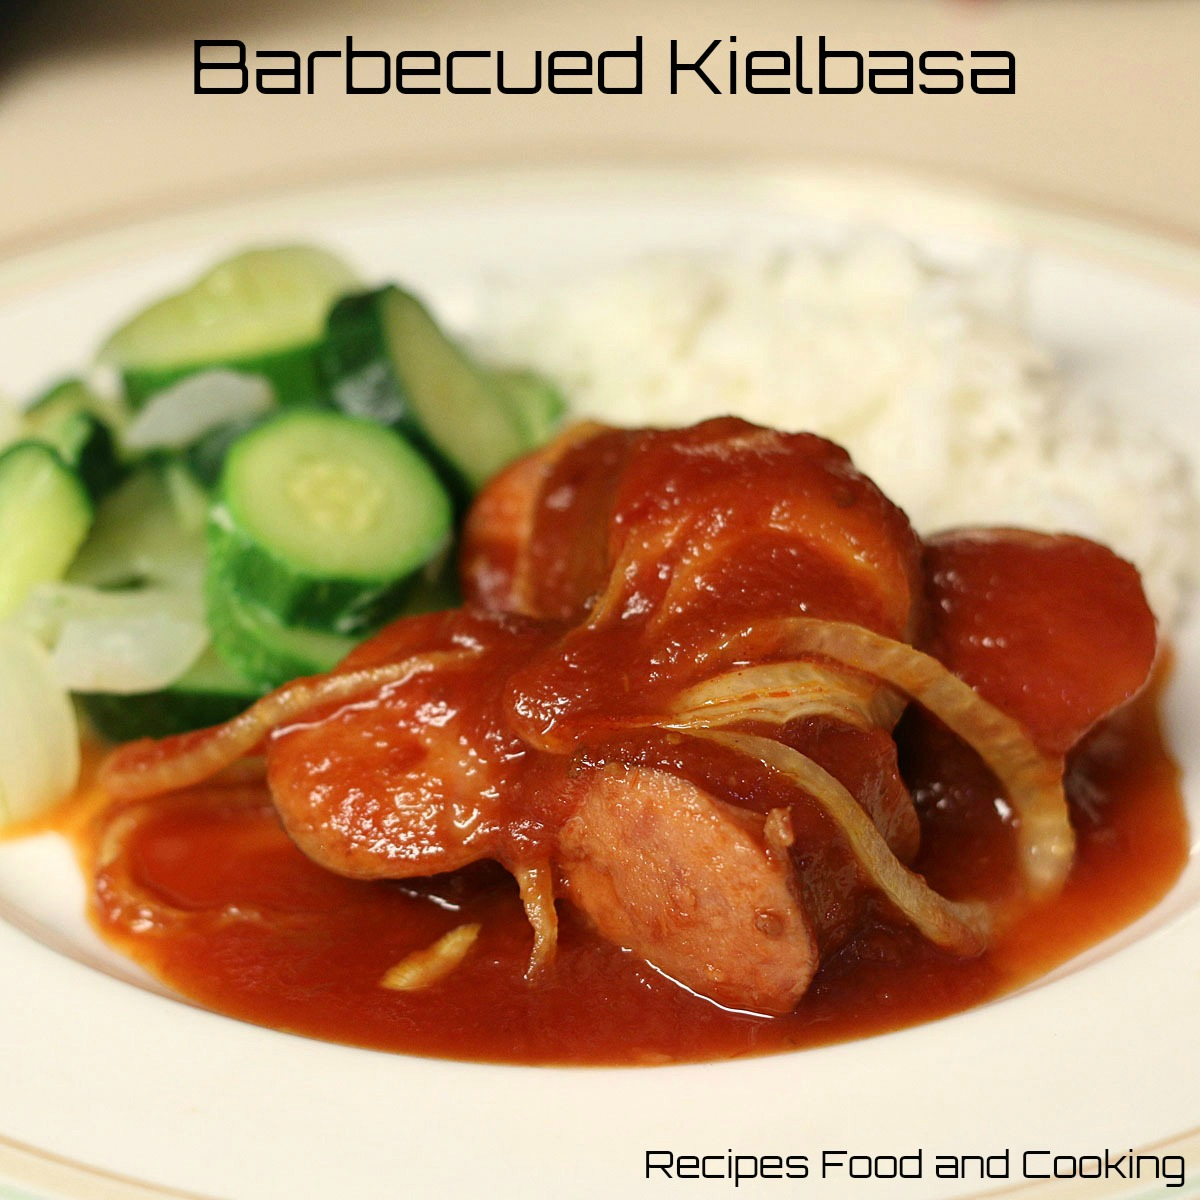 Barbecued Kielbasa Recipes Food and Cooking